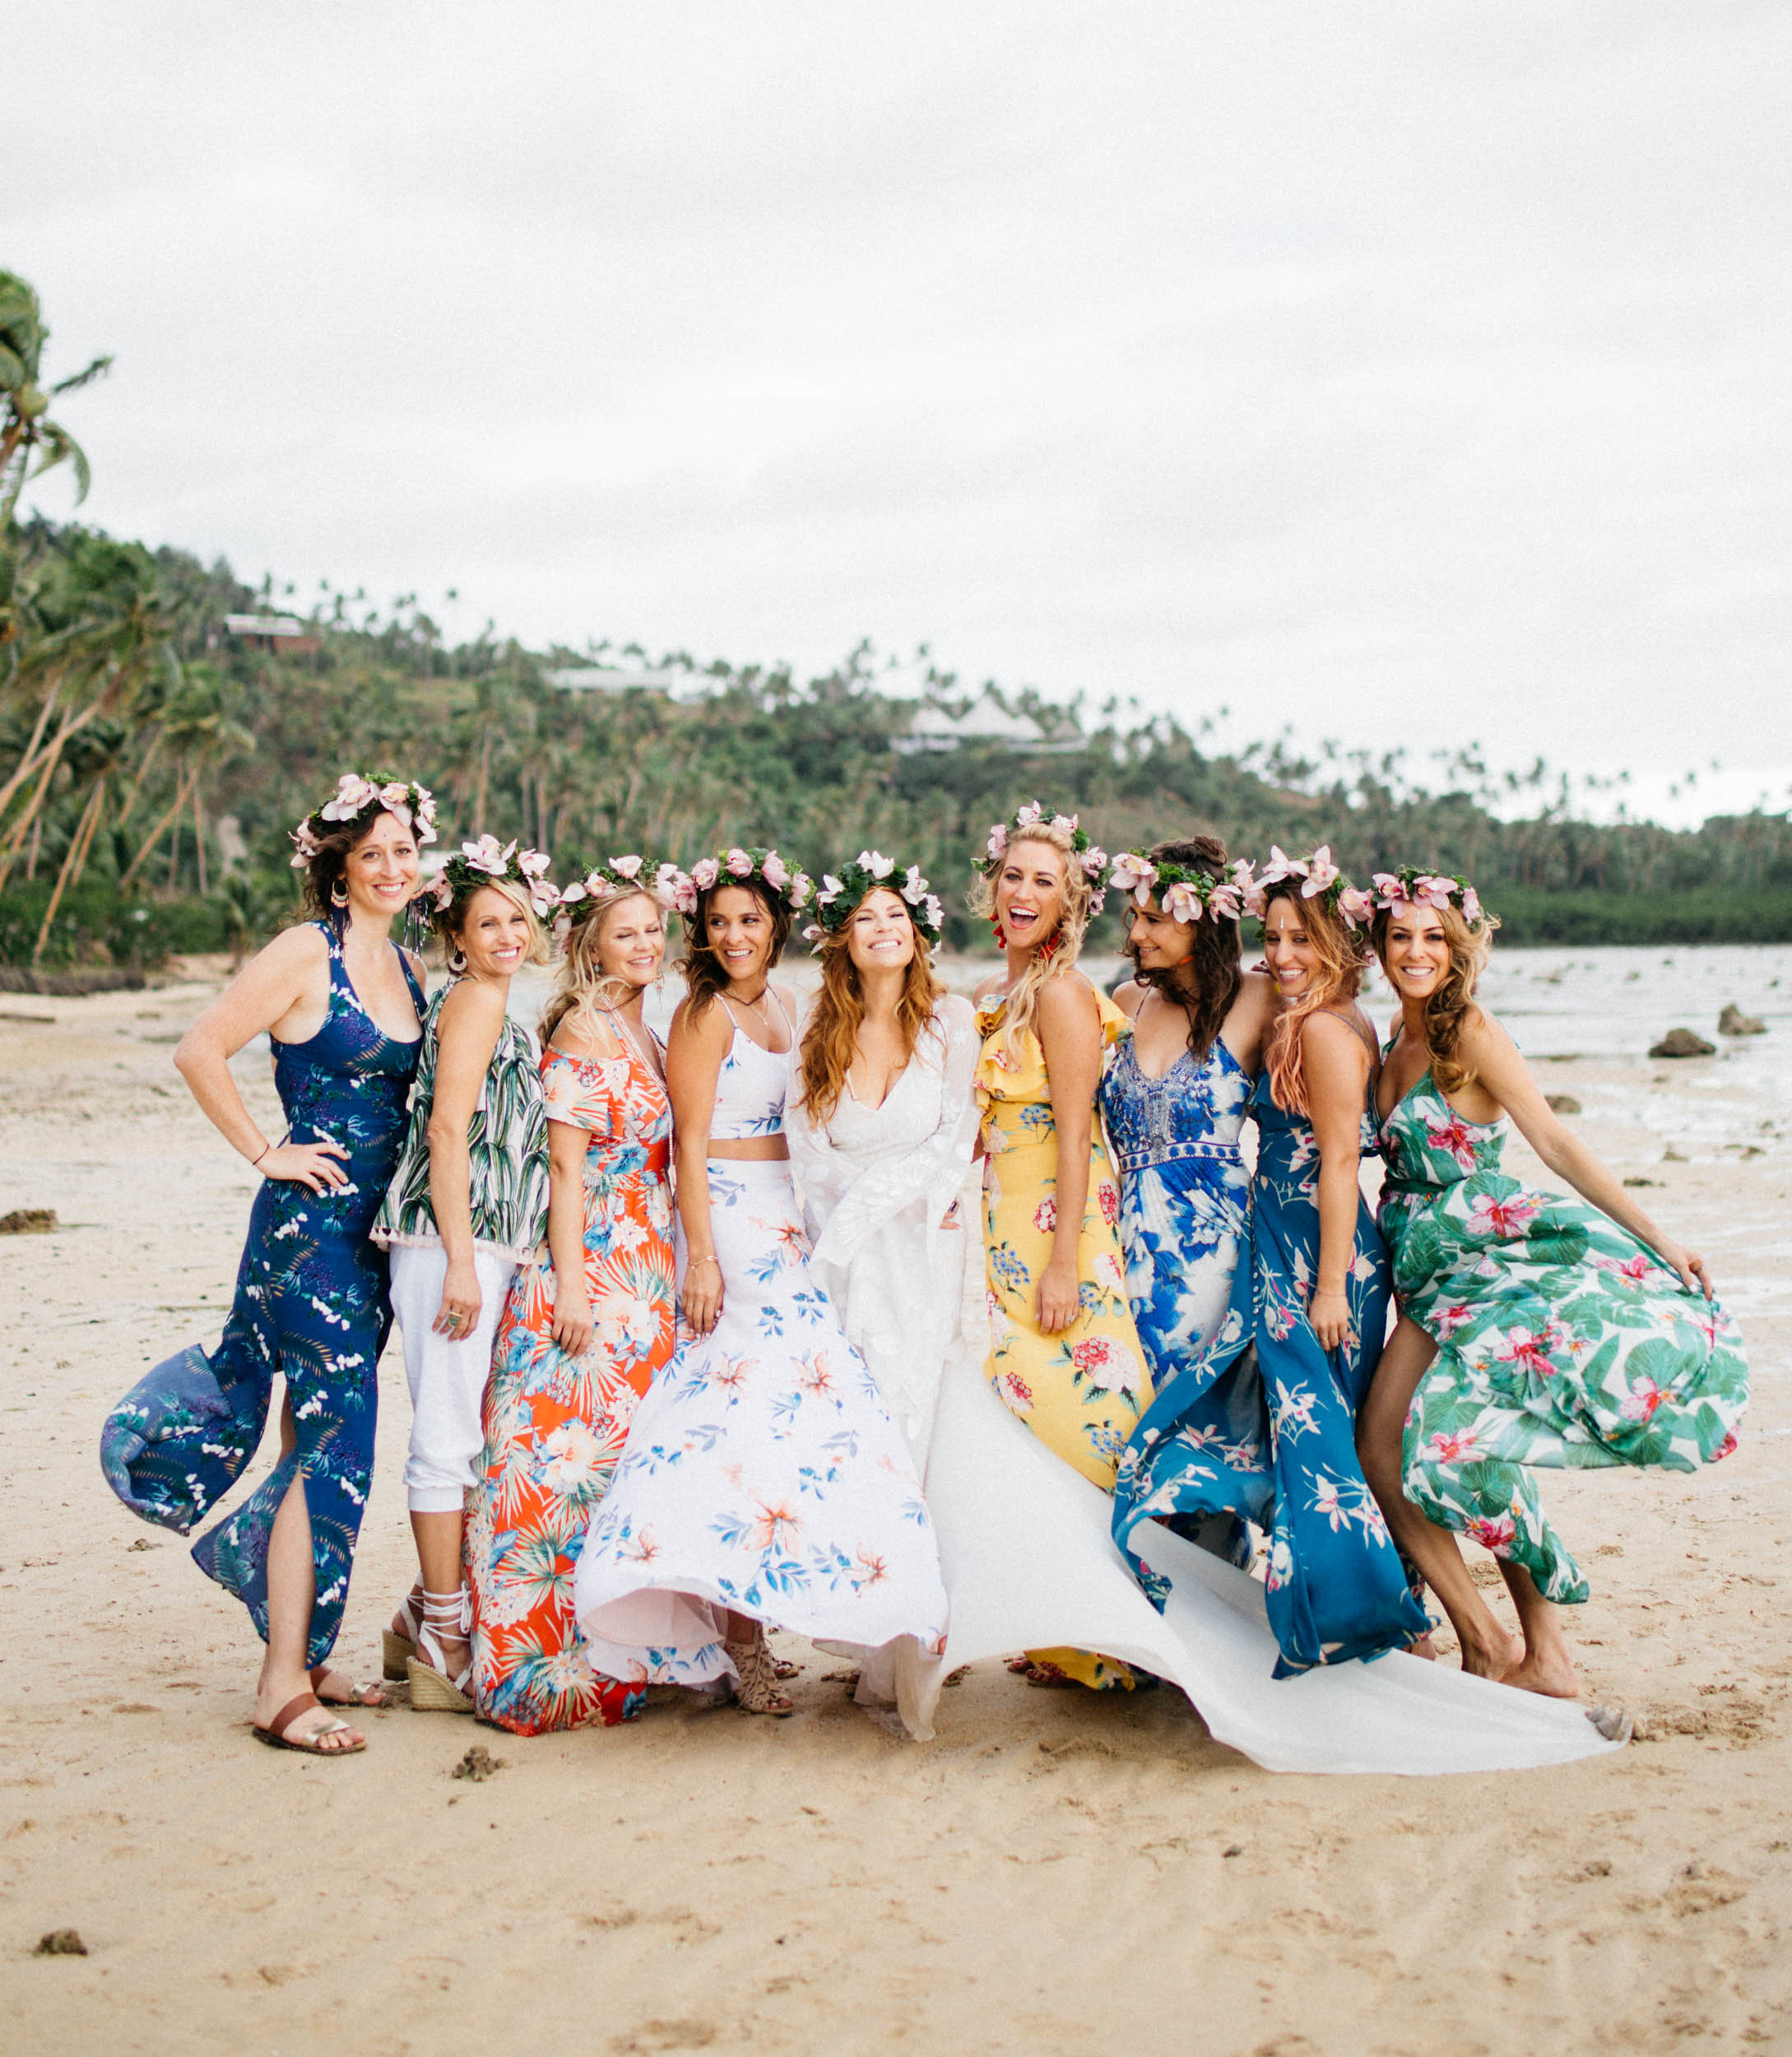 colourful bridesmaids dresses